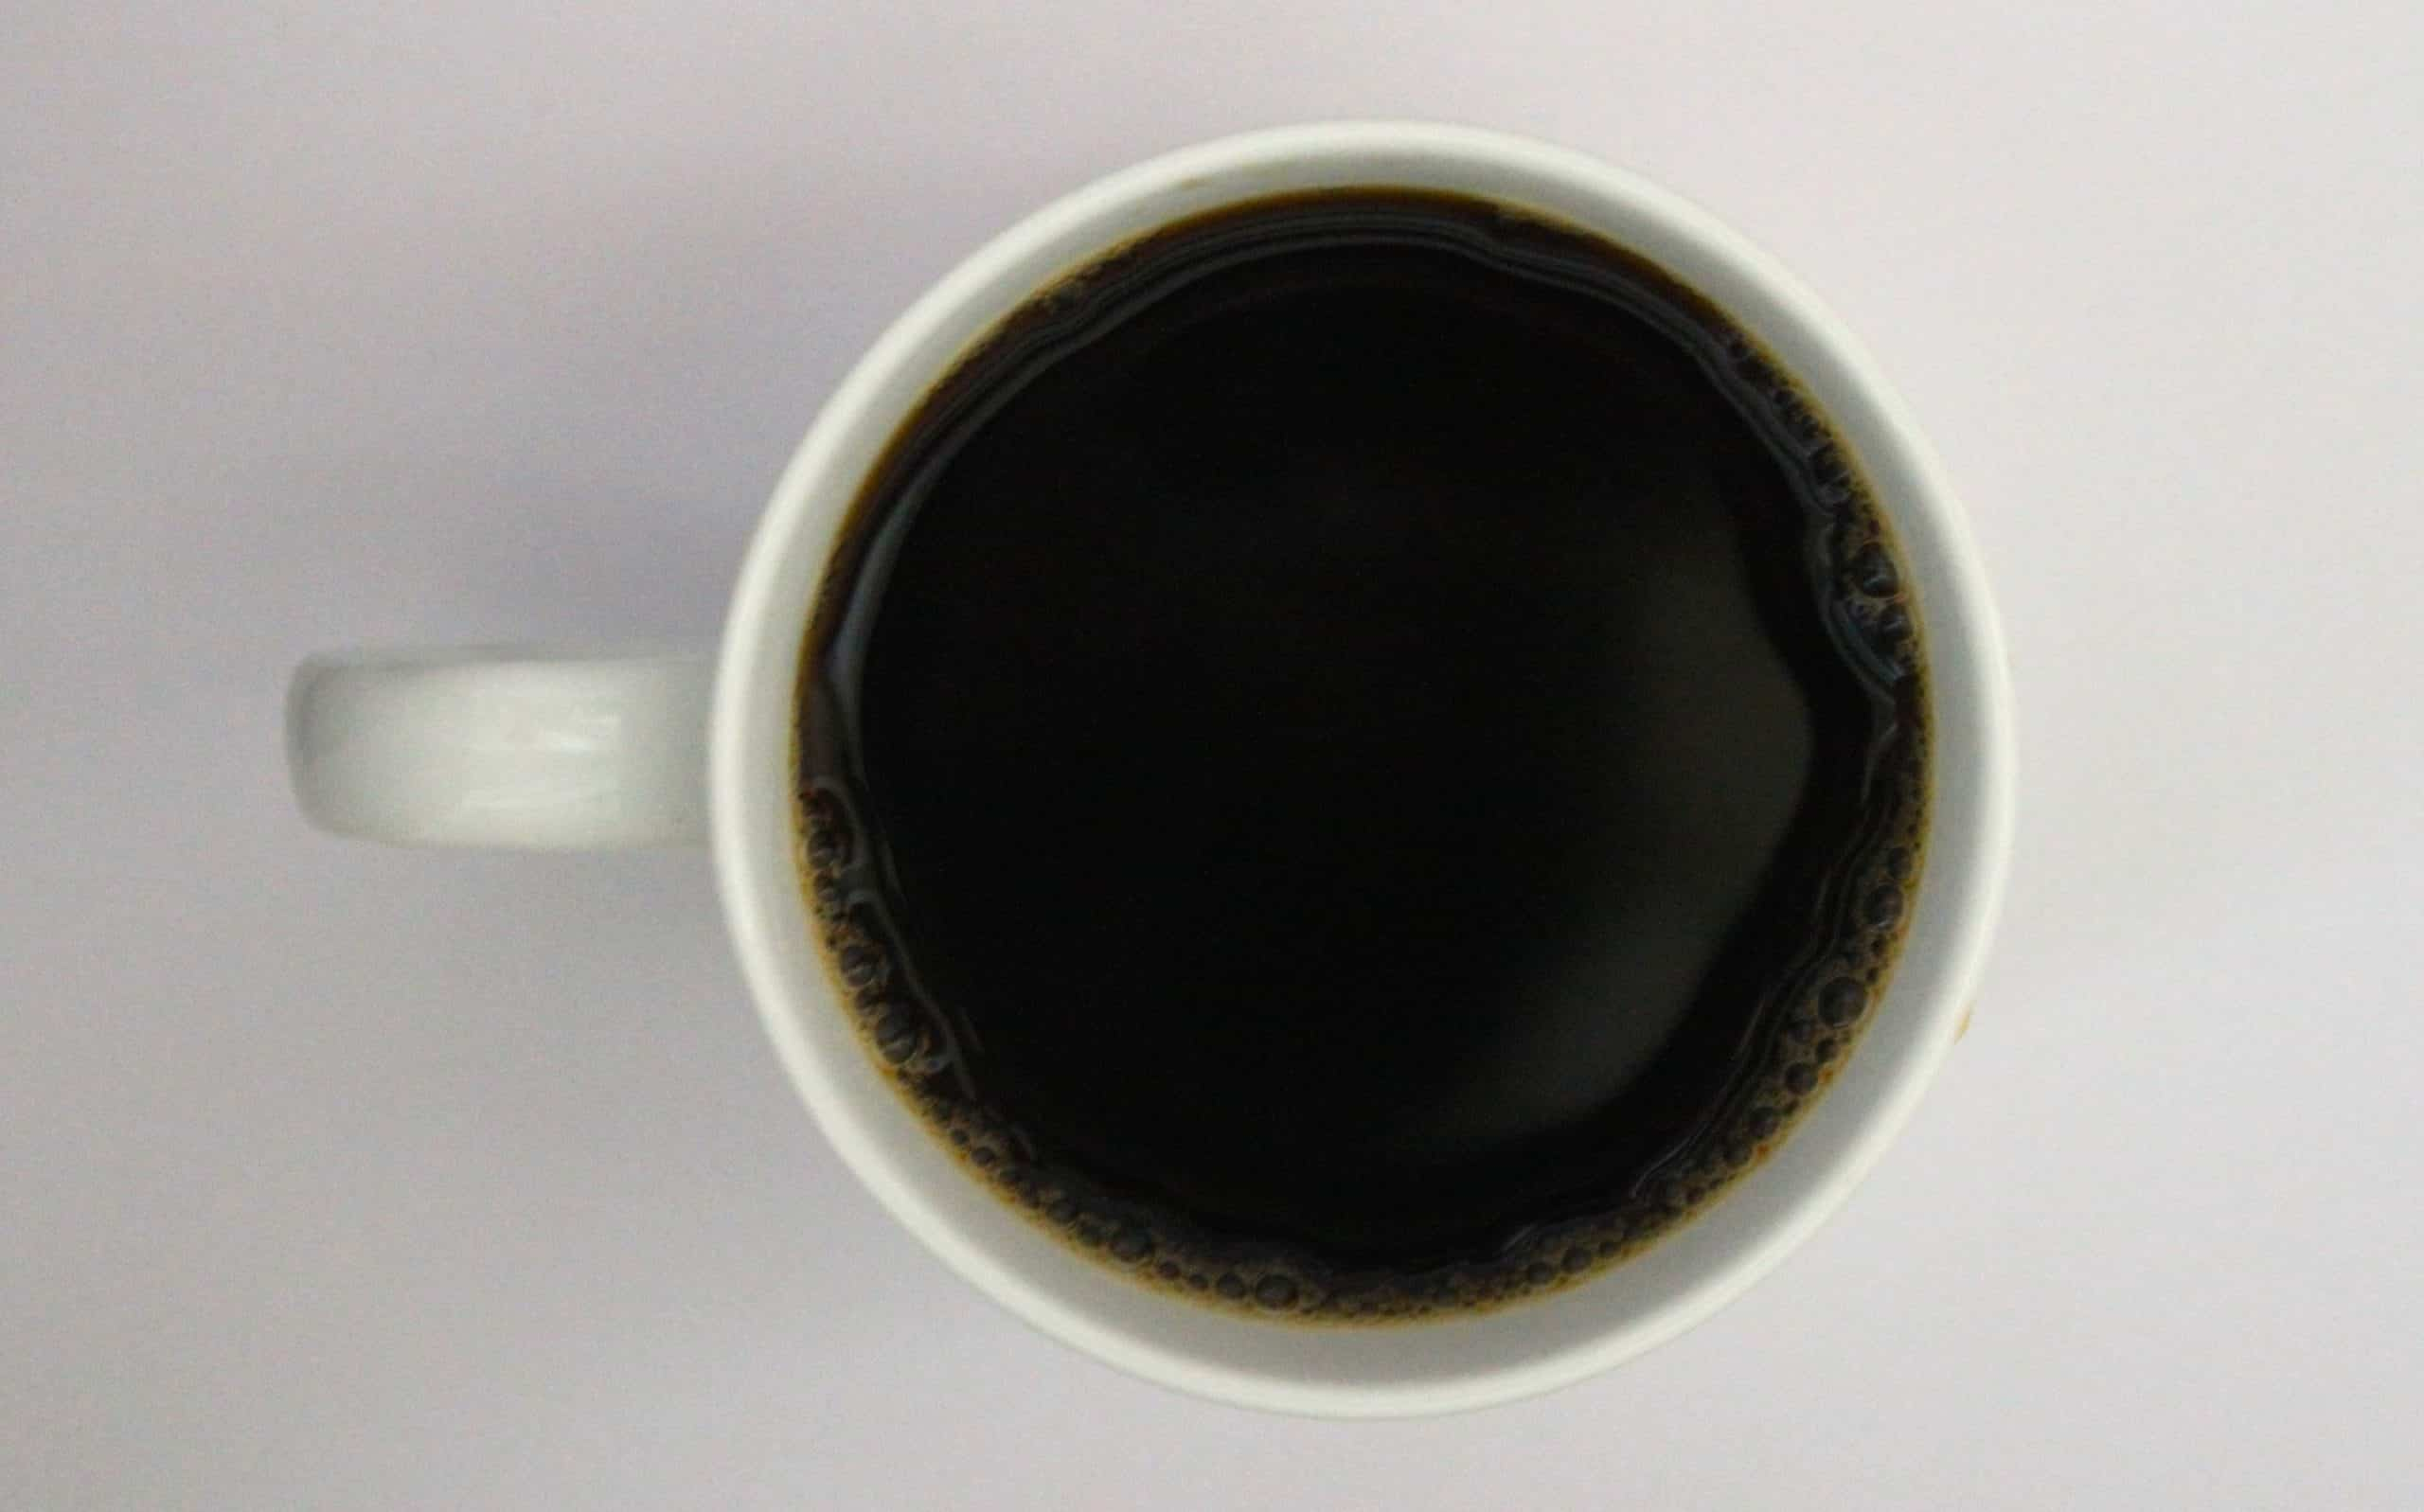 How to make coffee good without sugar